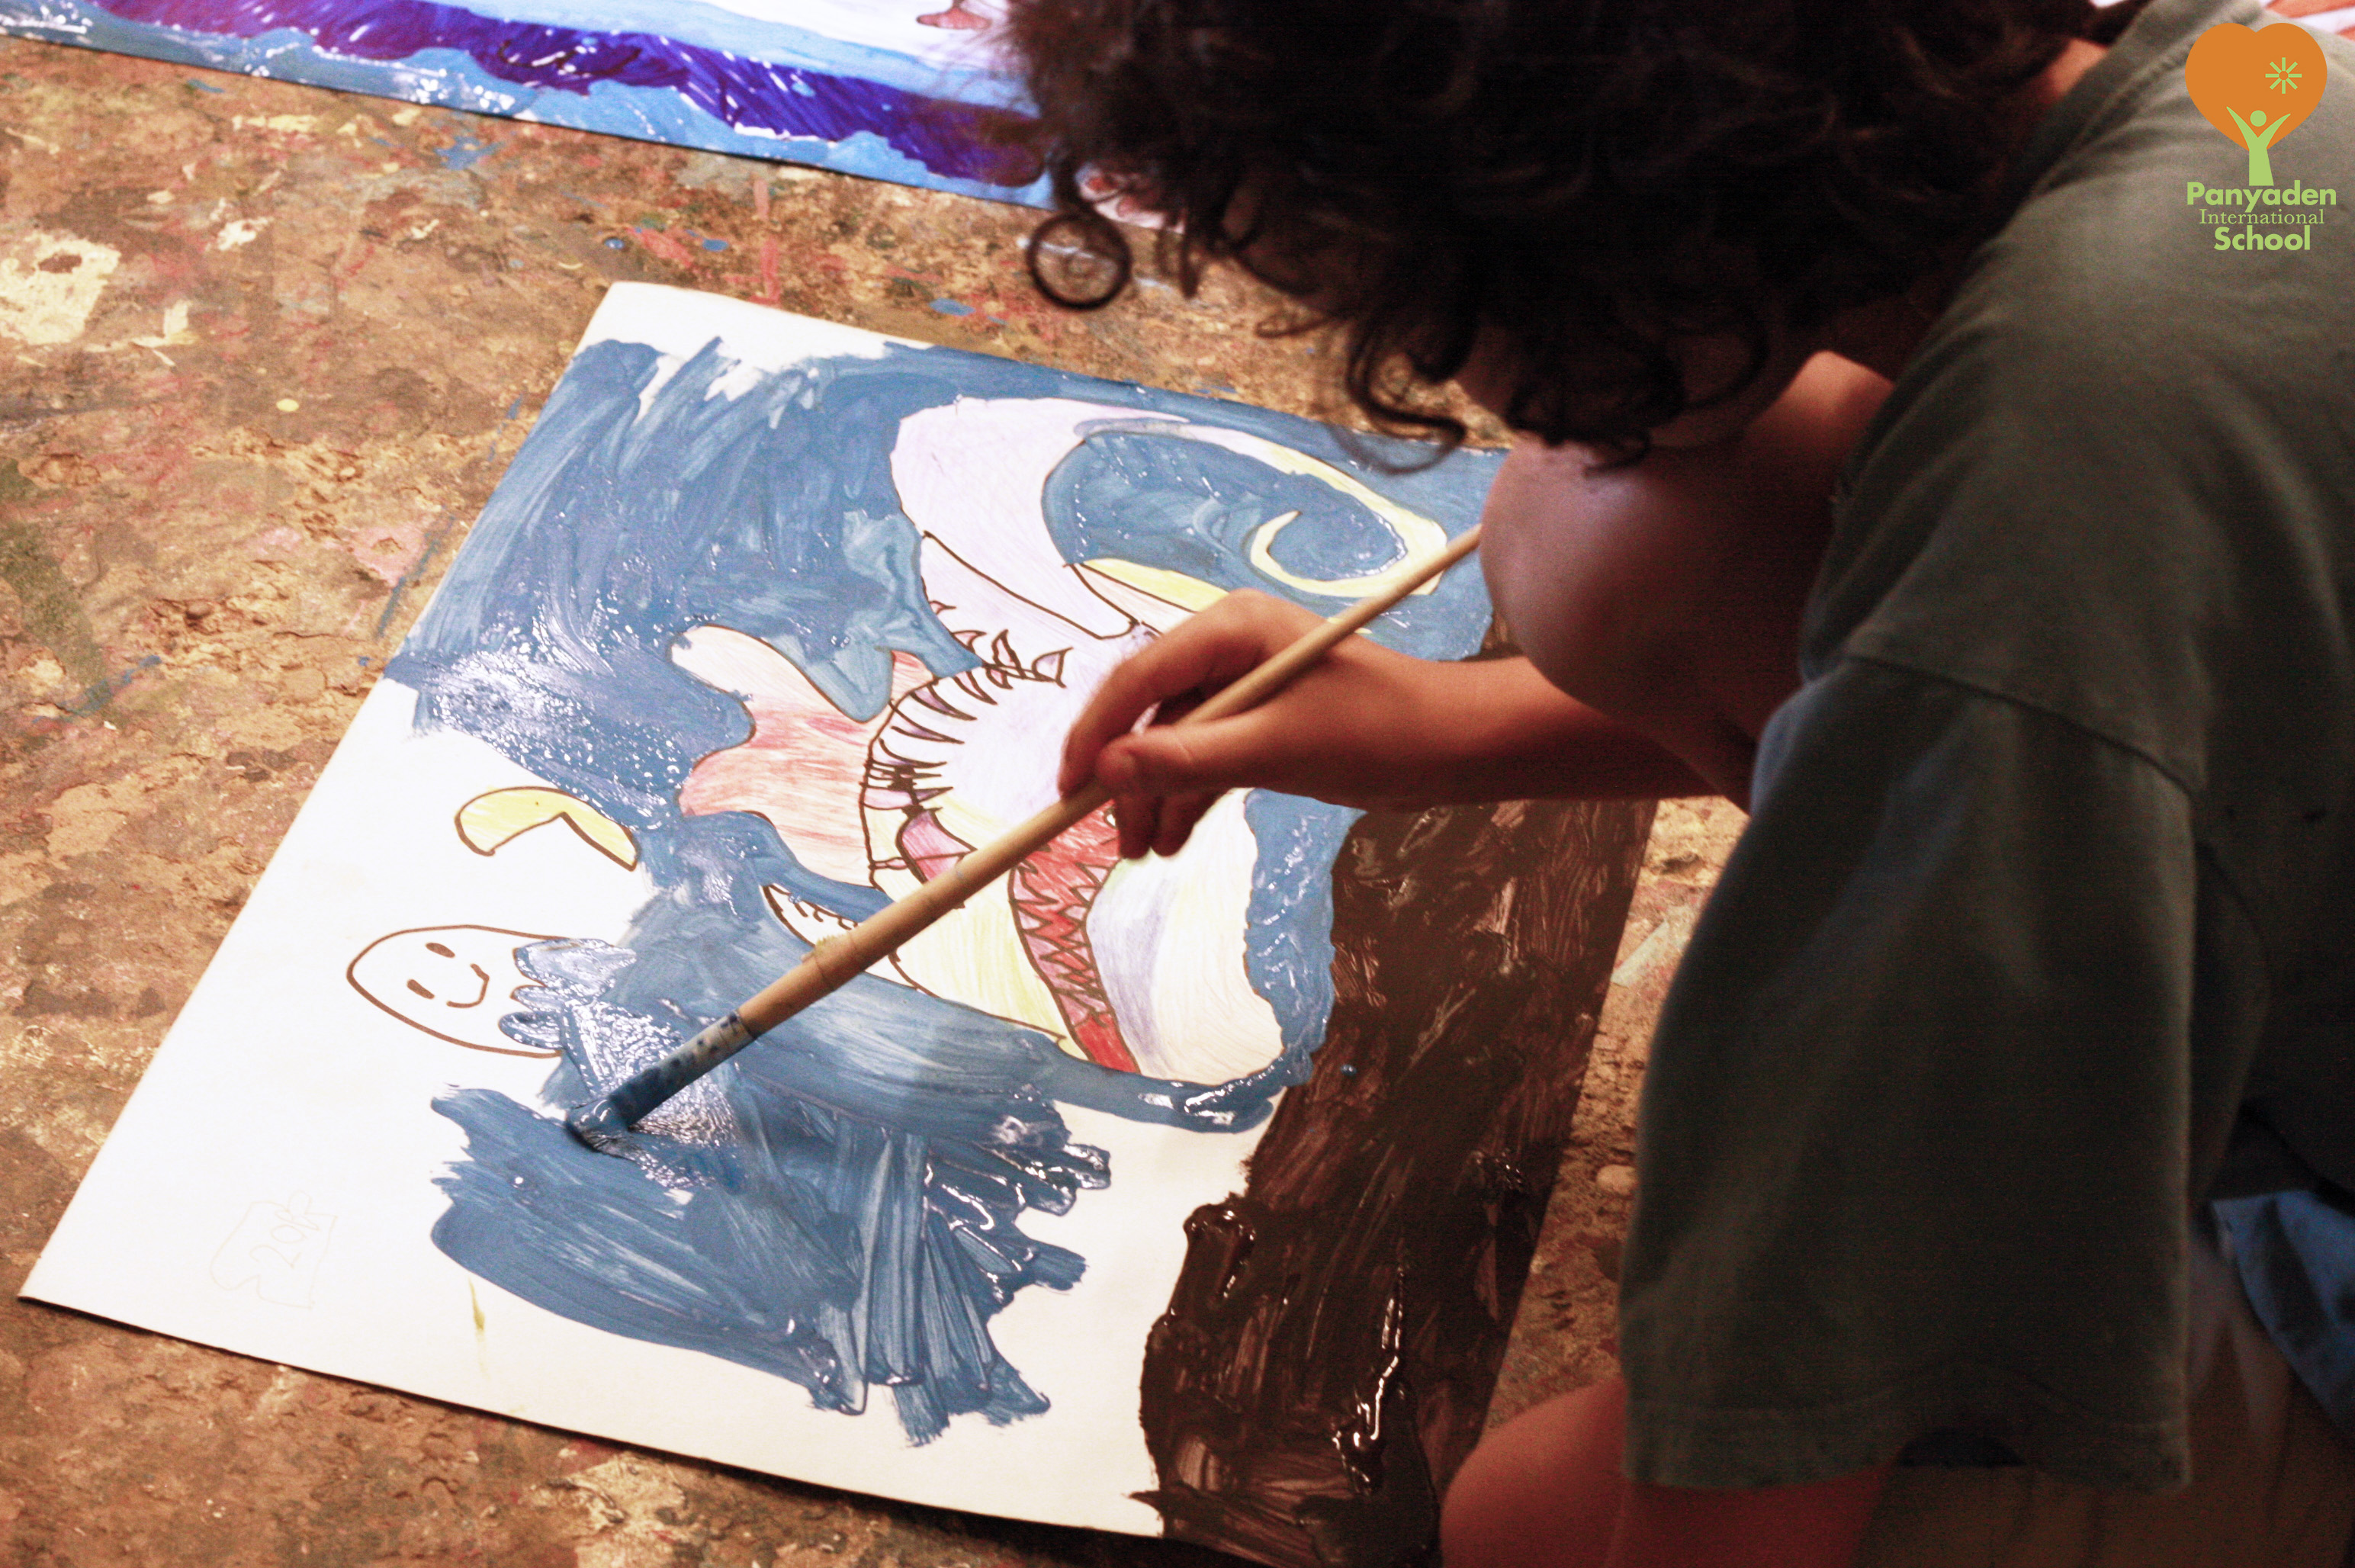 Panyaden Year 1 student working on his paintings